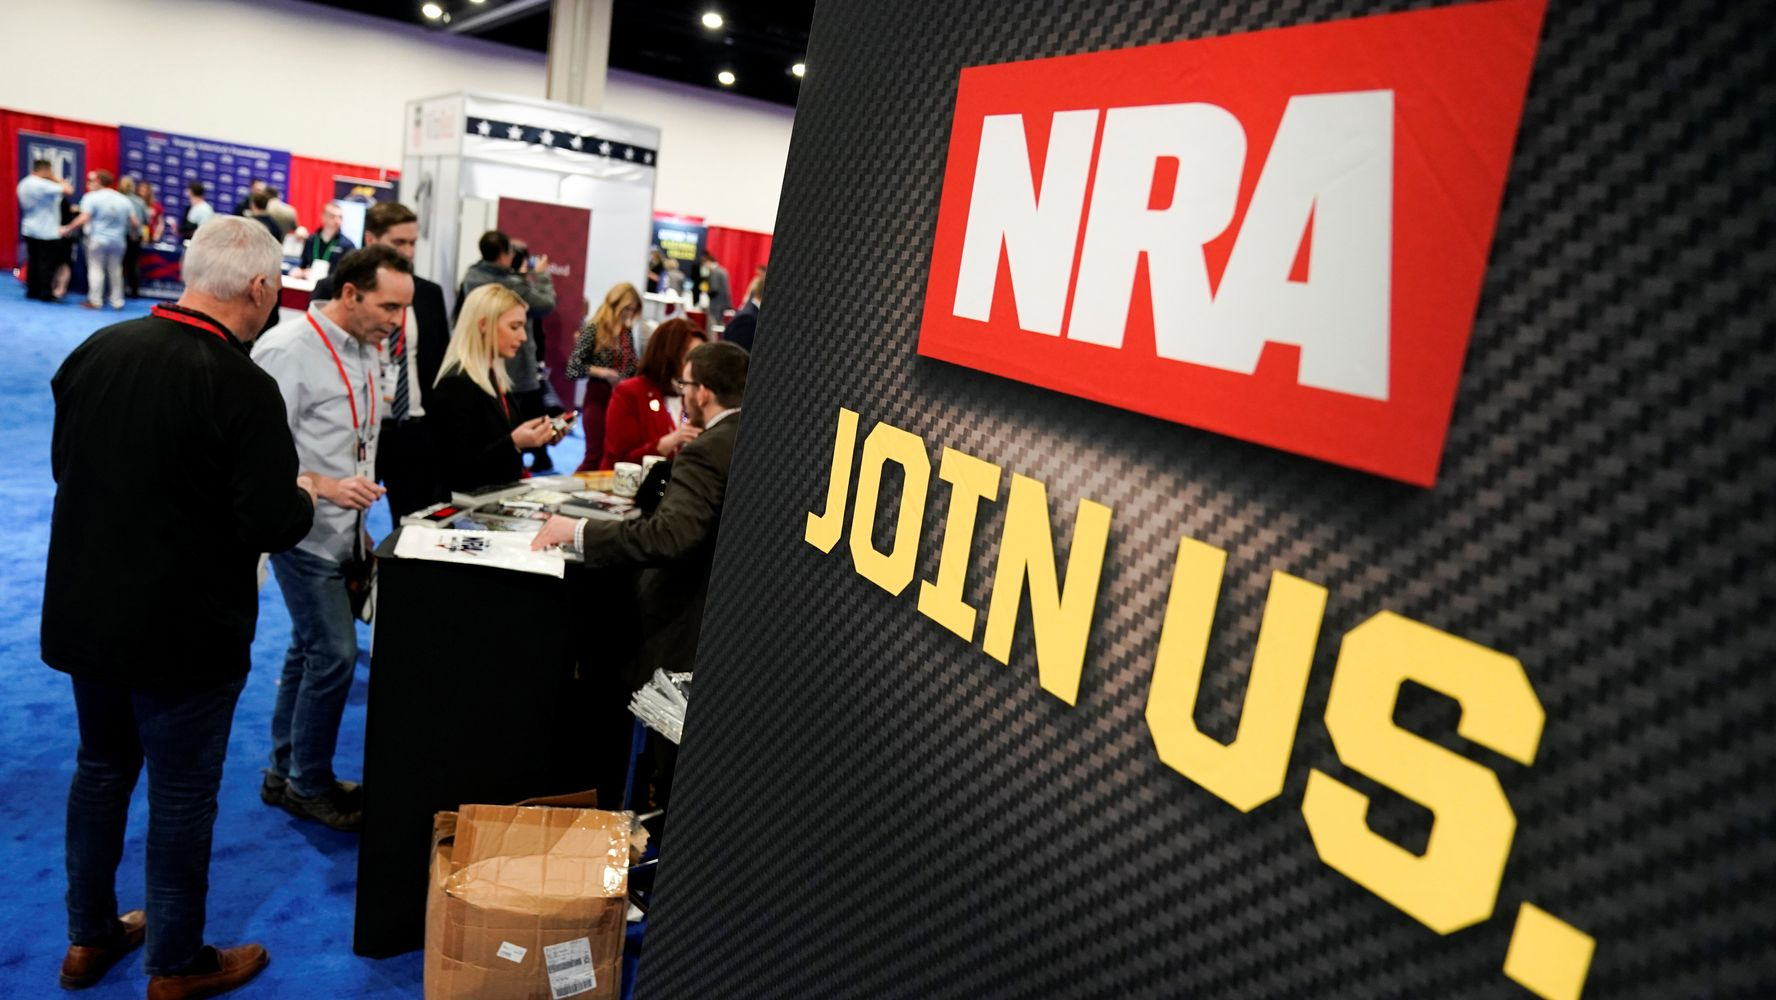 New York Settles With NRA Over Illegal Insurance Sales, Deceiving Members